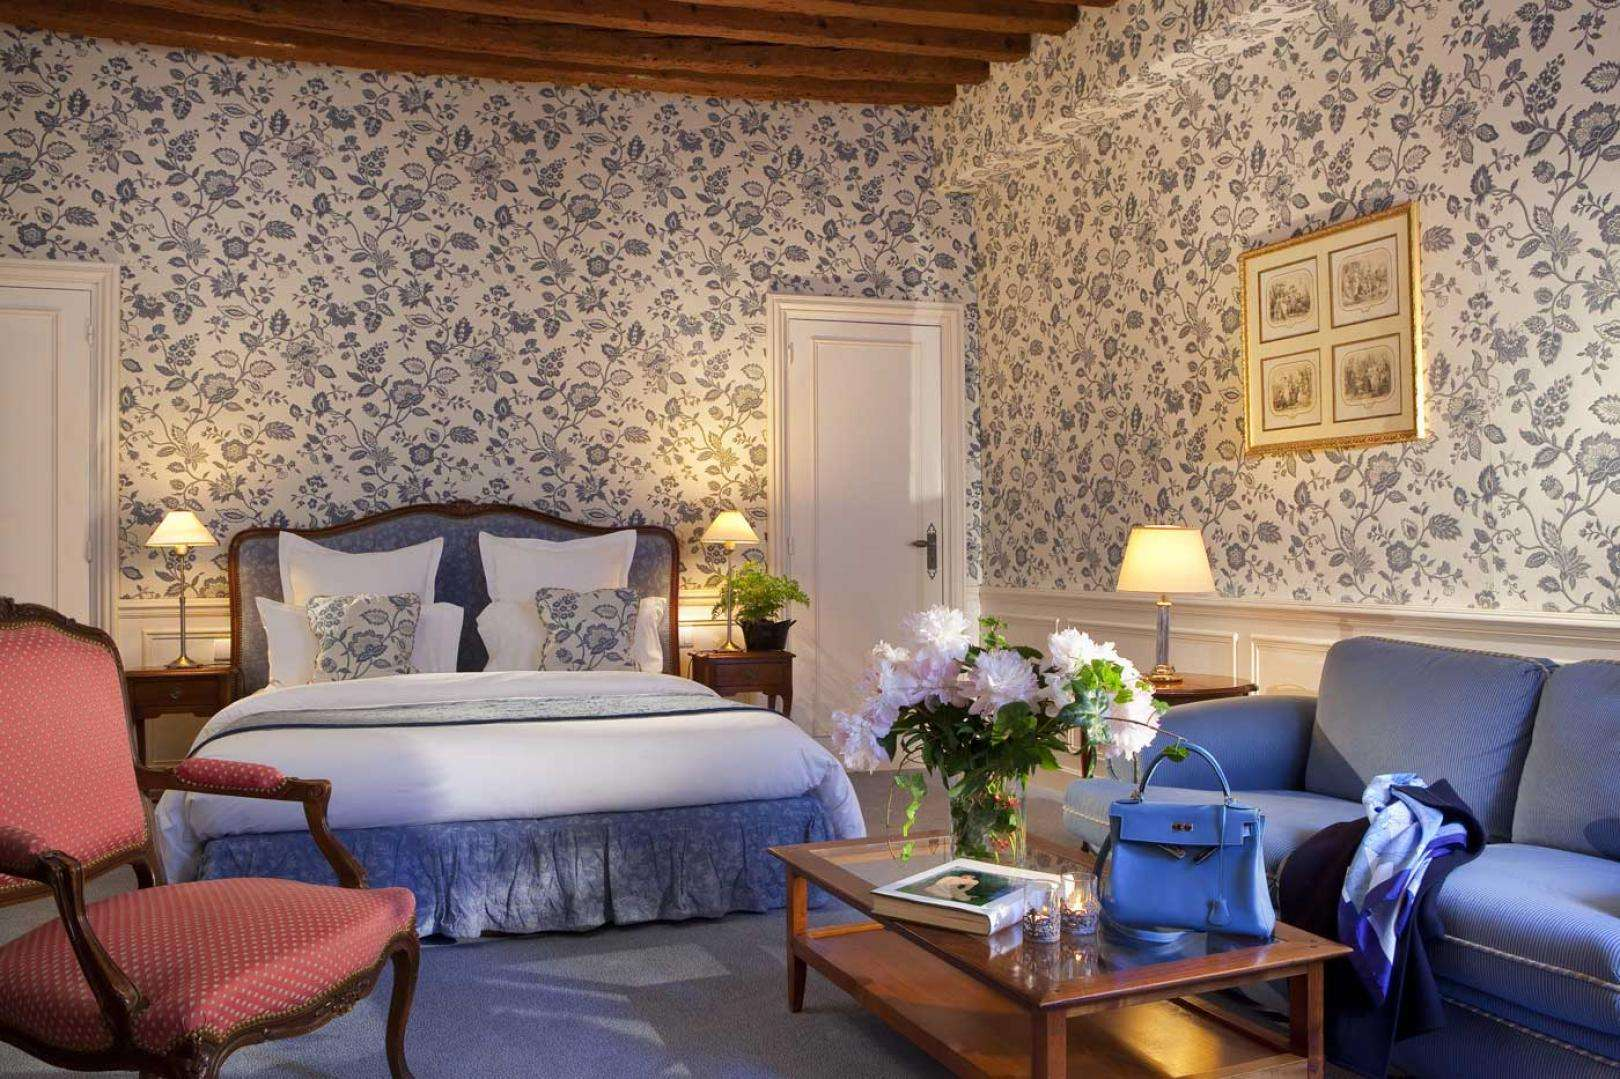 Chambre D Hotel Deco hôtel d'angleterre - photo gallery - in the heart of saint